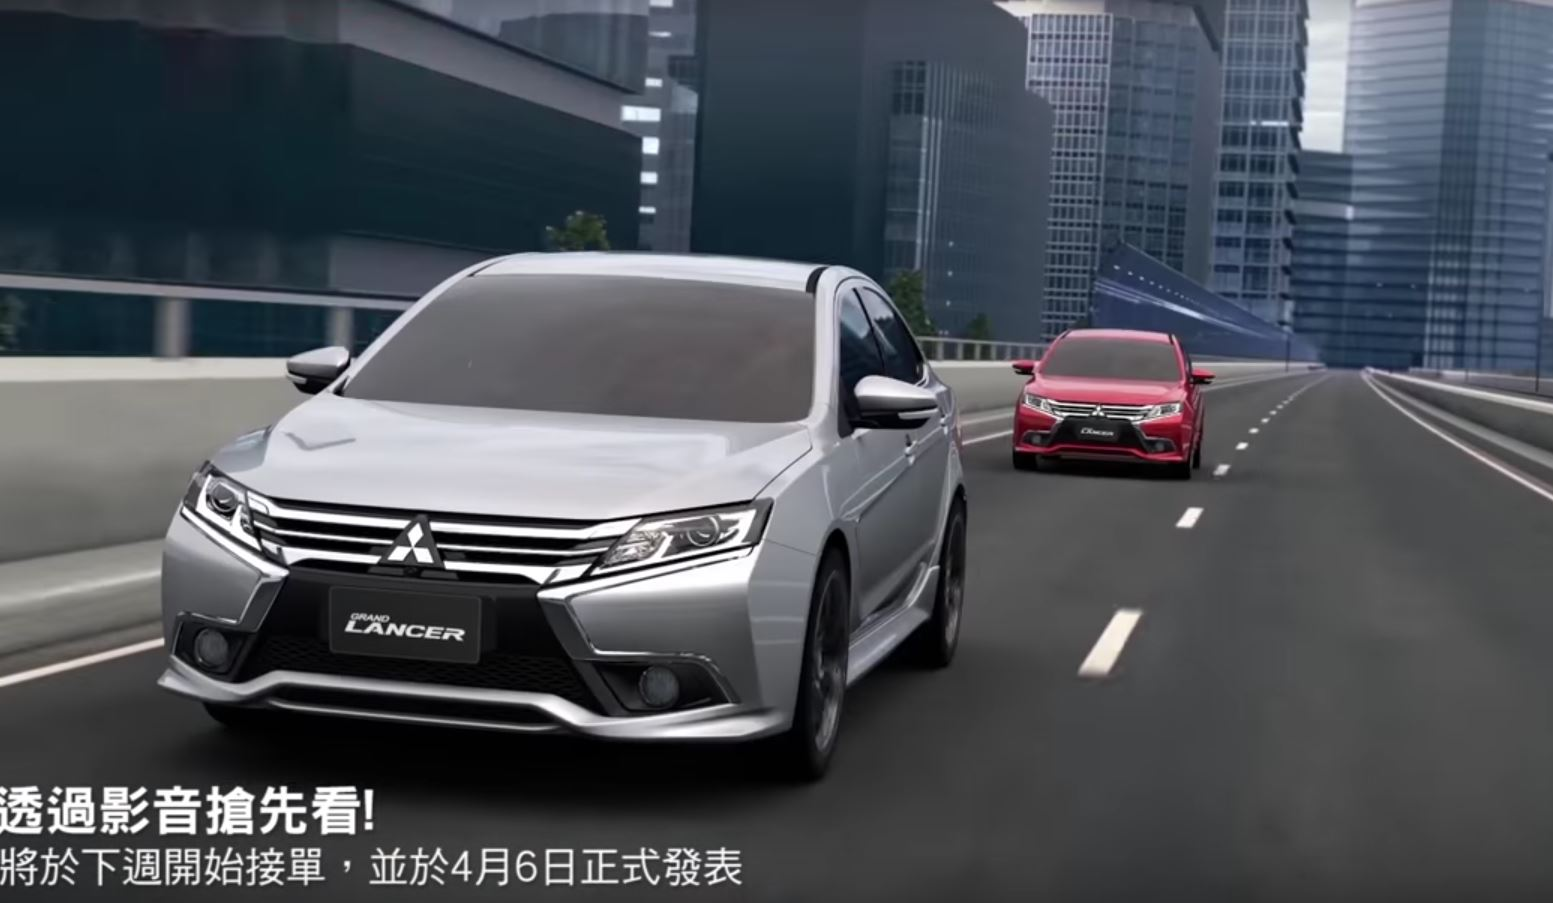 2017 Mitsubishi Grand Lancer Launched In China And Taiwan